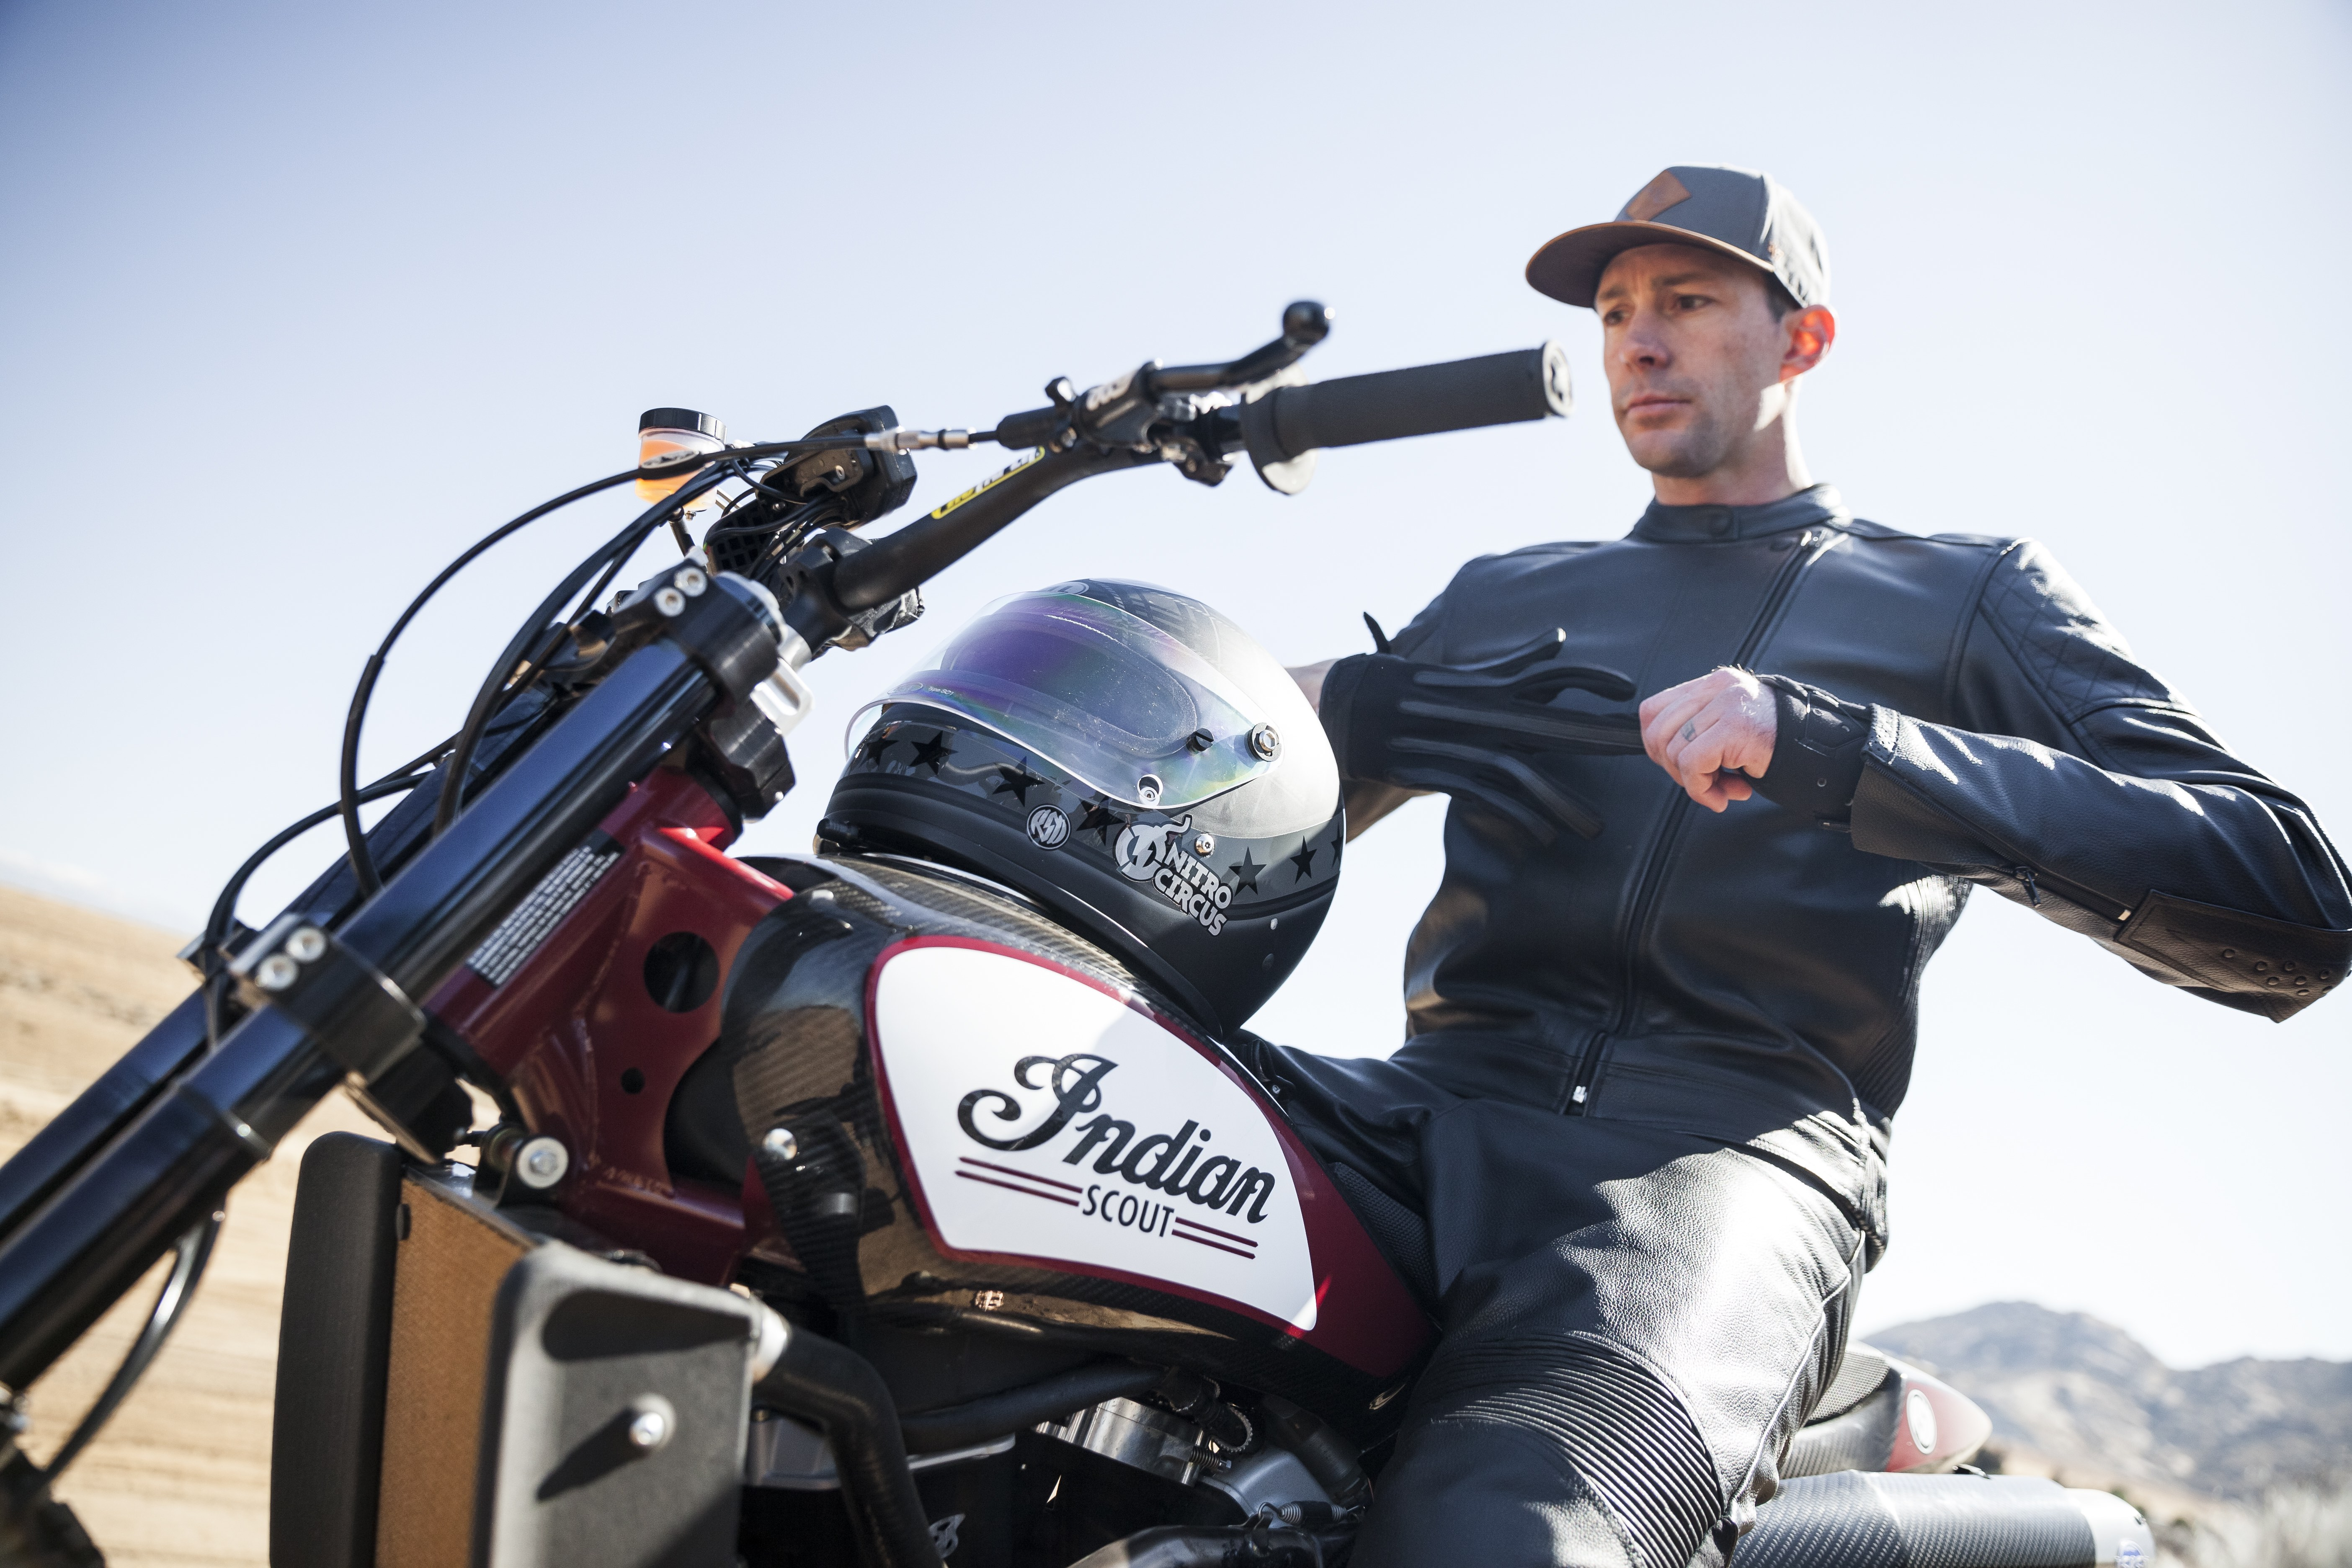 Travis Pastrana to use Indian FTR750 for Knievel-tribute jumps